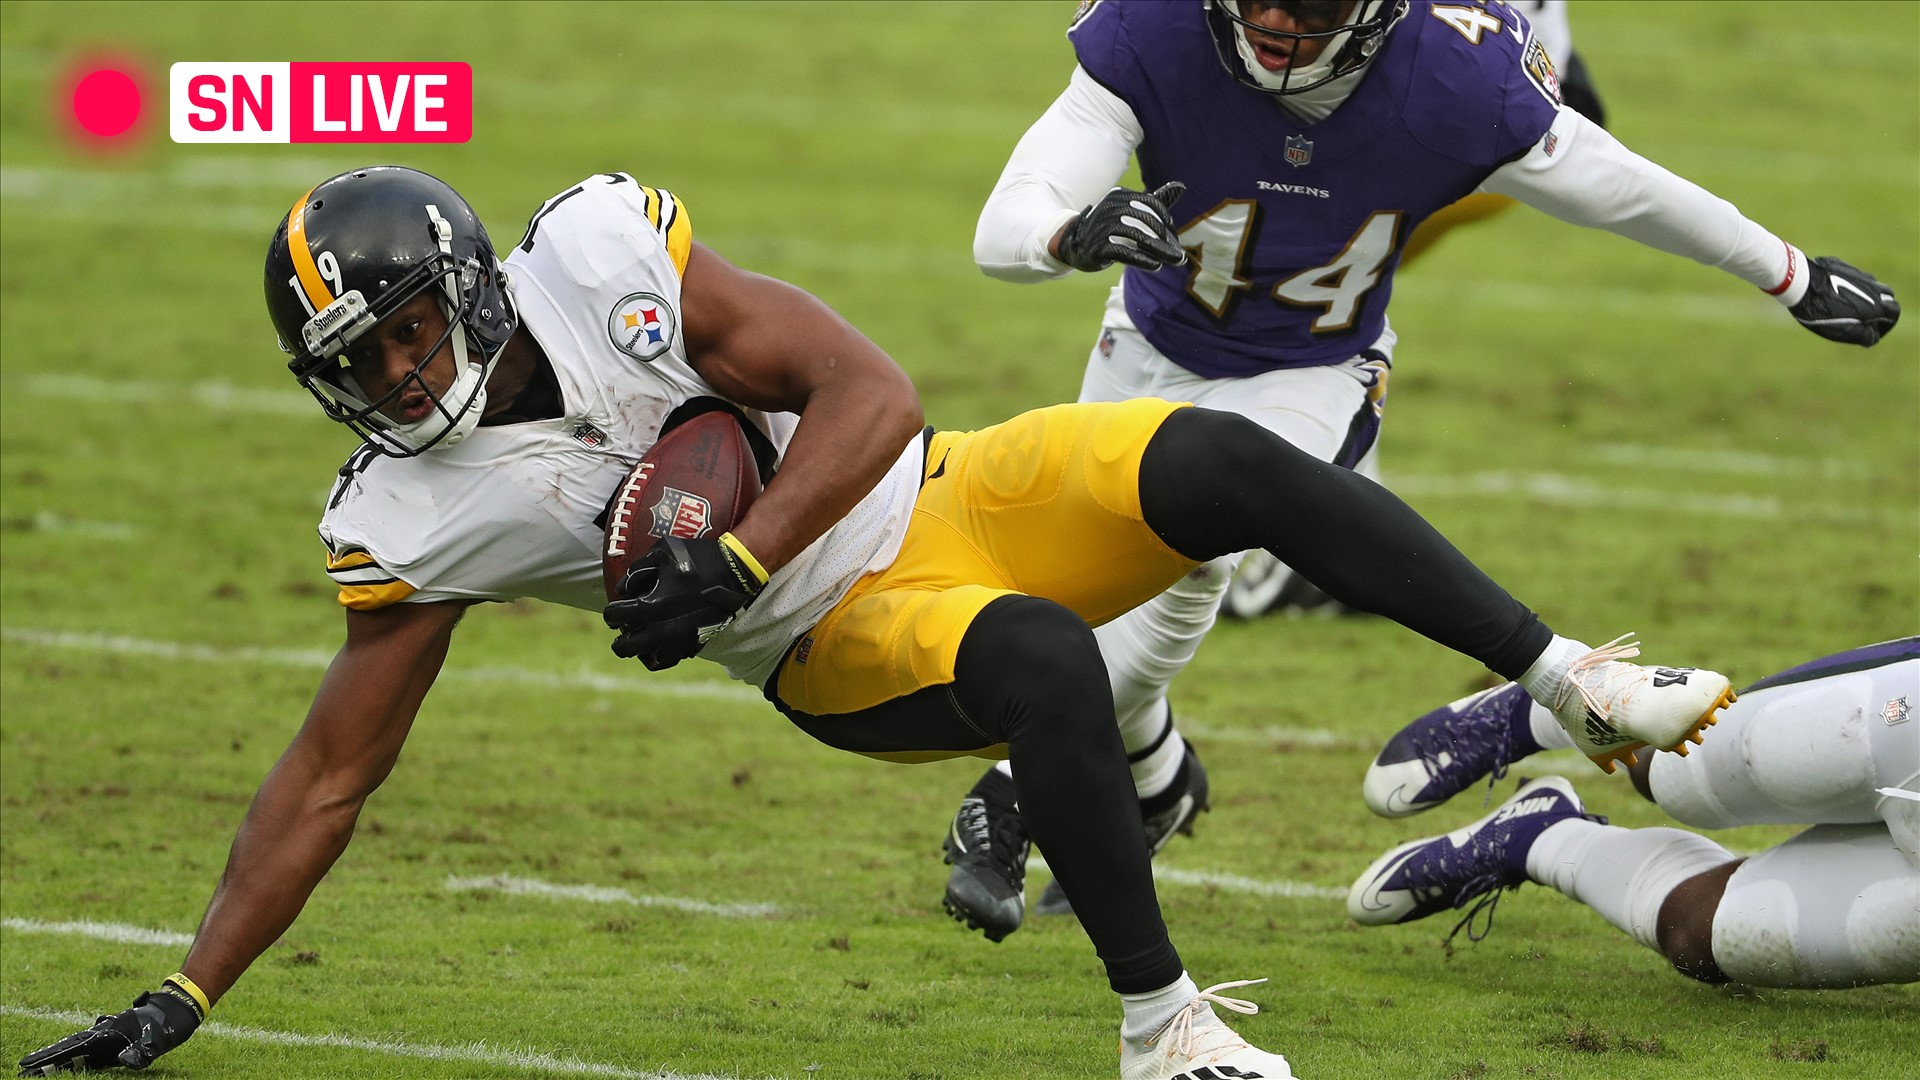 Steelers vs. Ravens live score, updates, highlights from NFL's Wednesday game